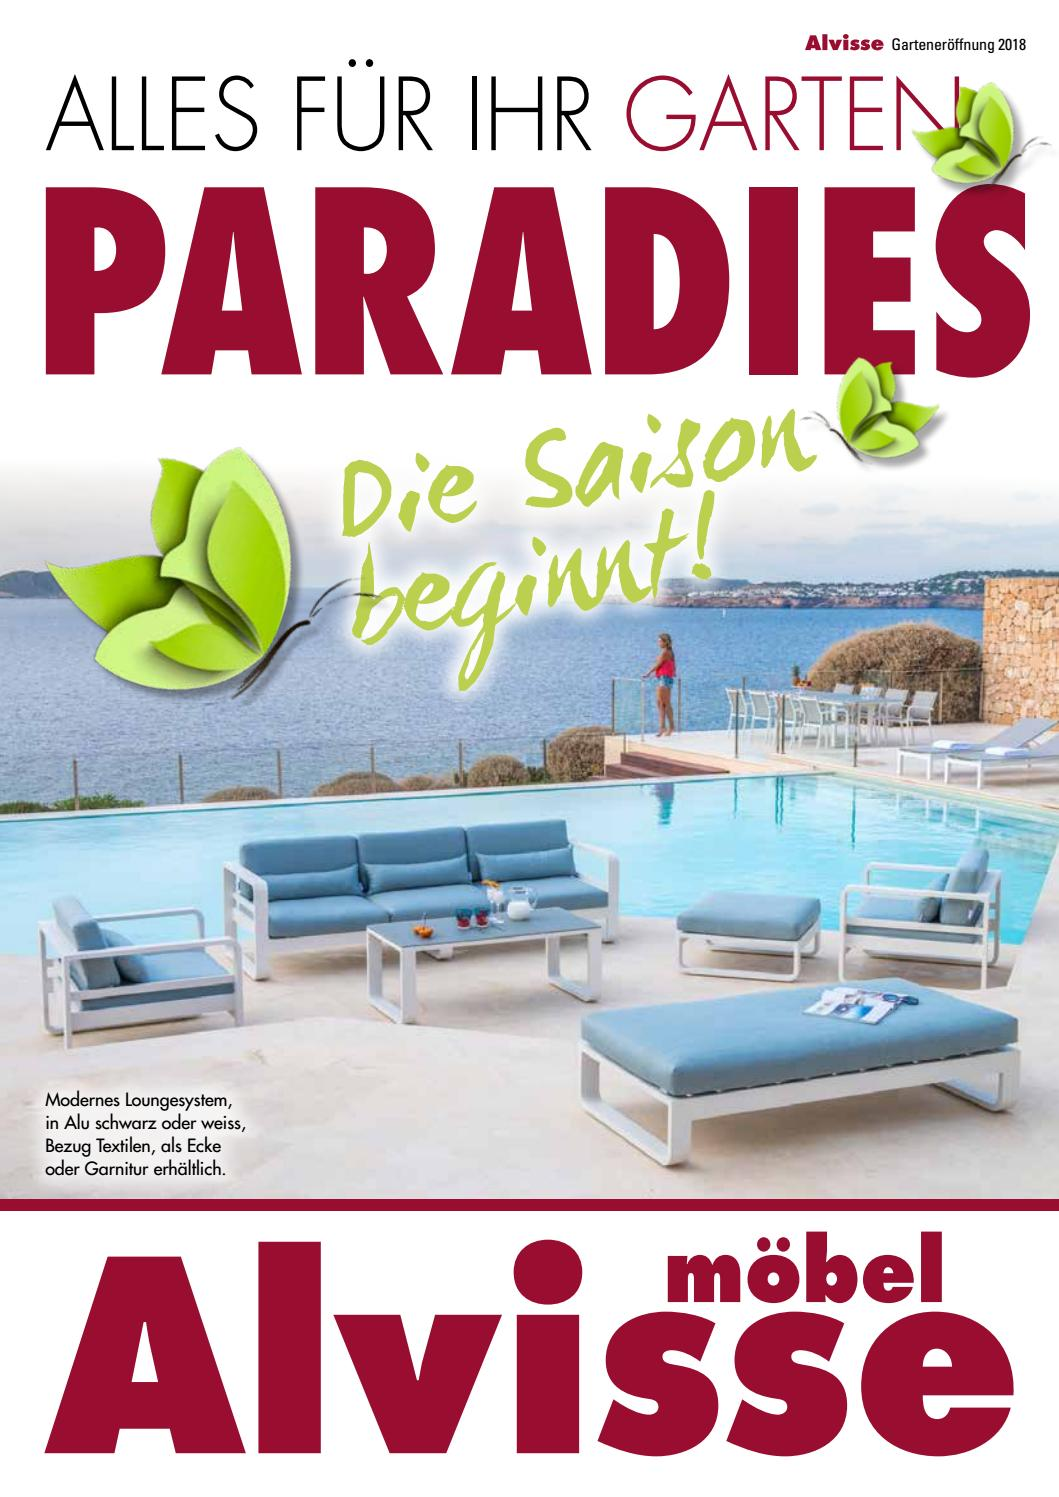 Alvisse Garten Paradies 2018 by Möbel Alvisse - issuu